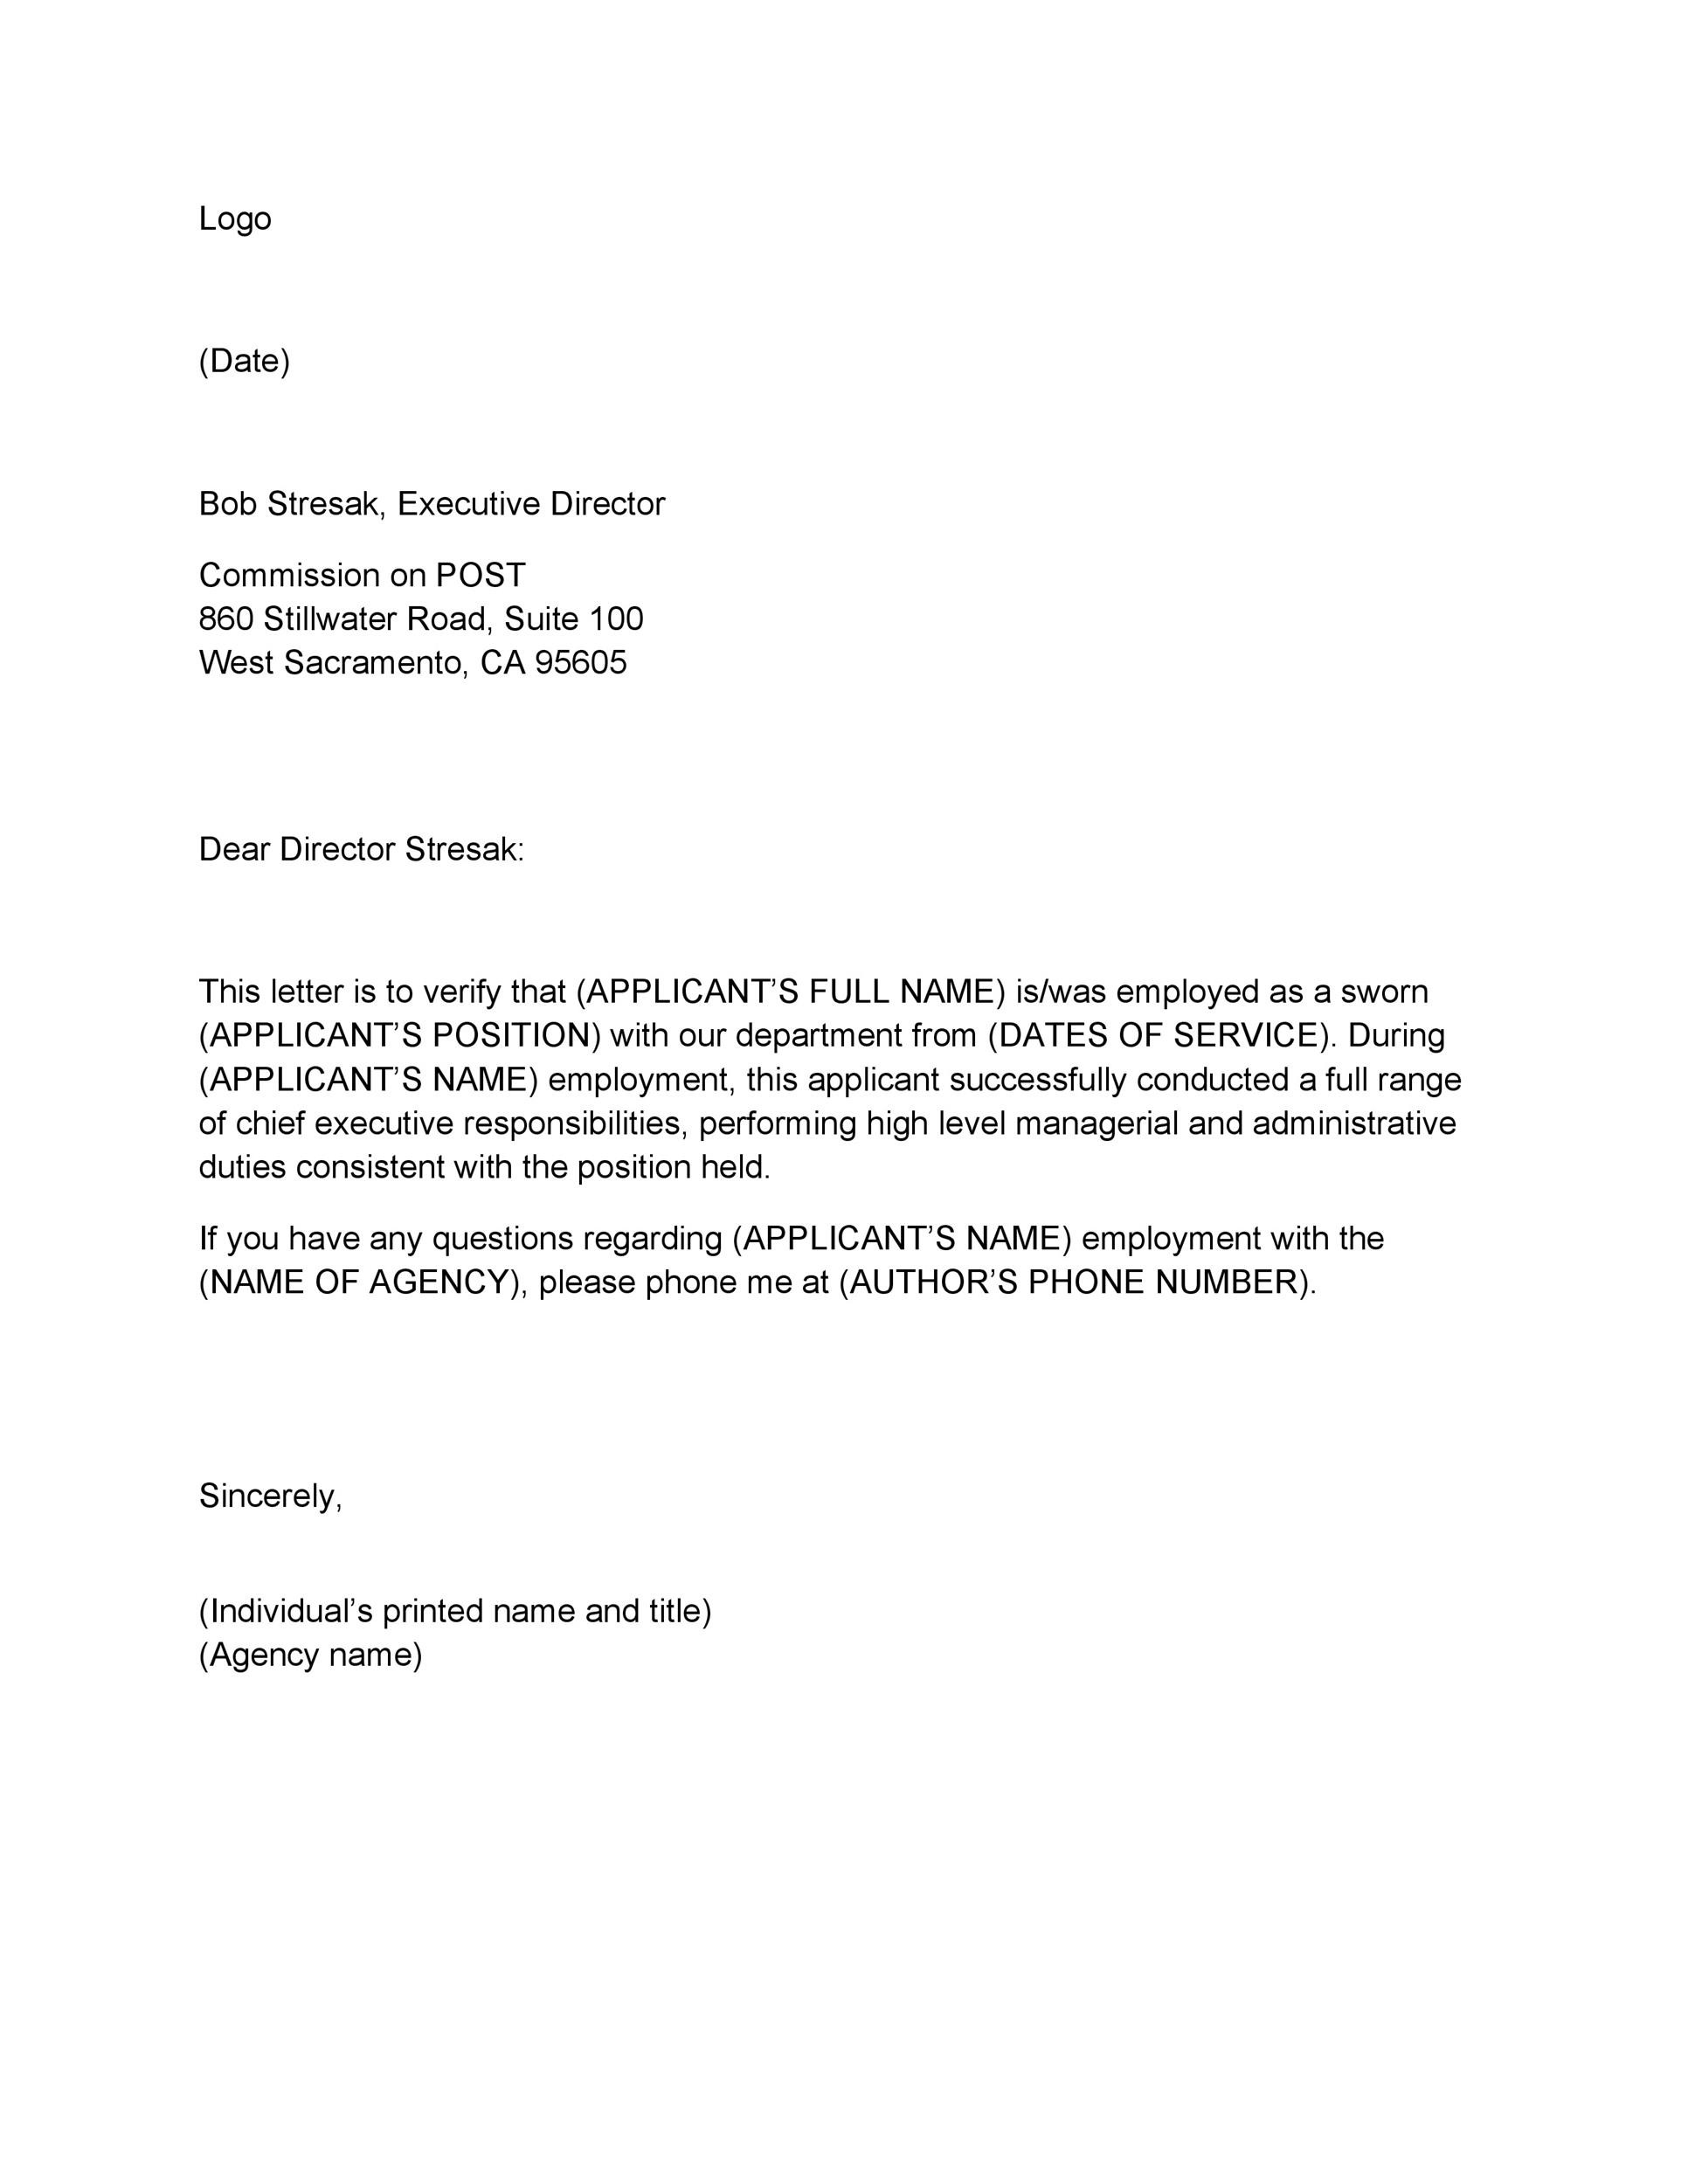 Employment Letters Proof Of Employment Letter Template